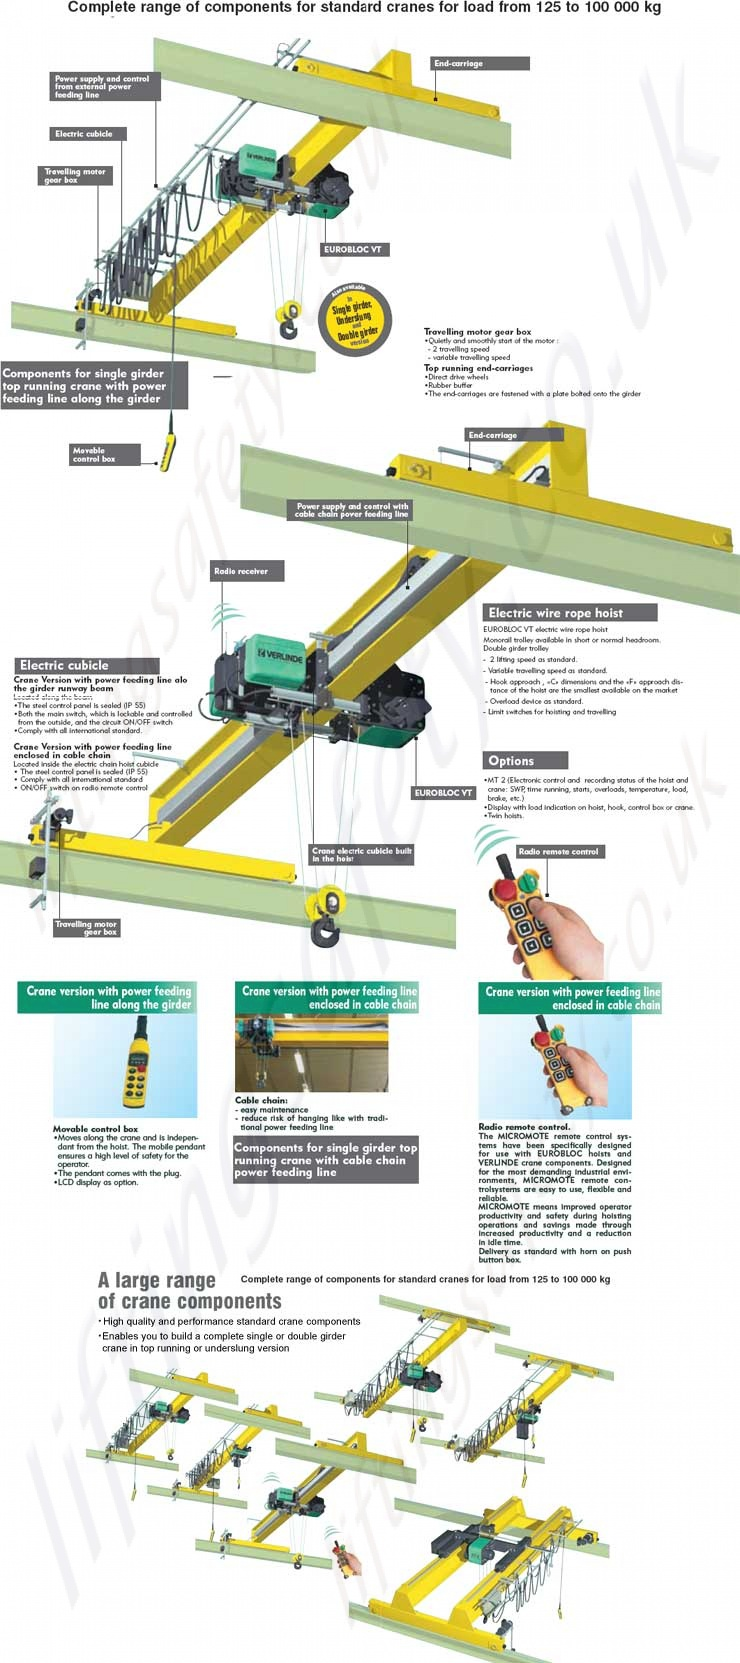 Powered Overhead Crane System - Range from 125kg to 100,000kg ...